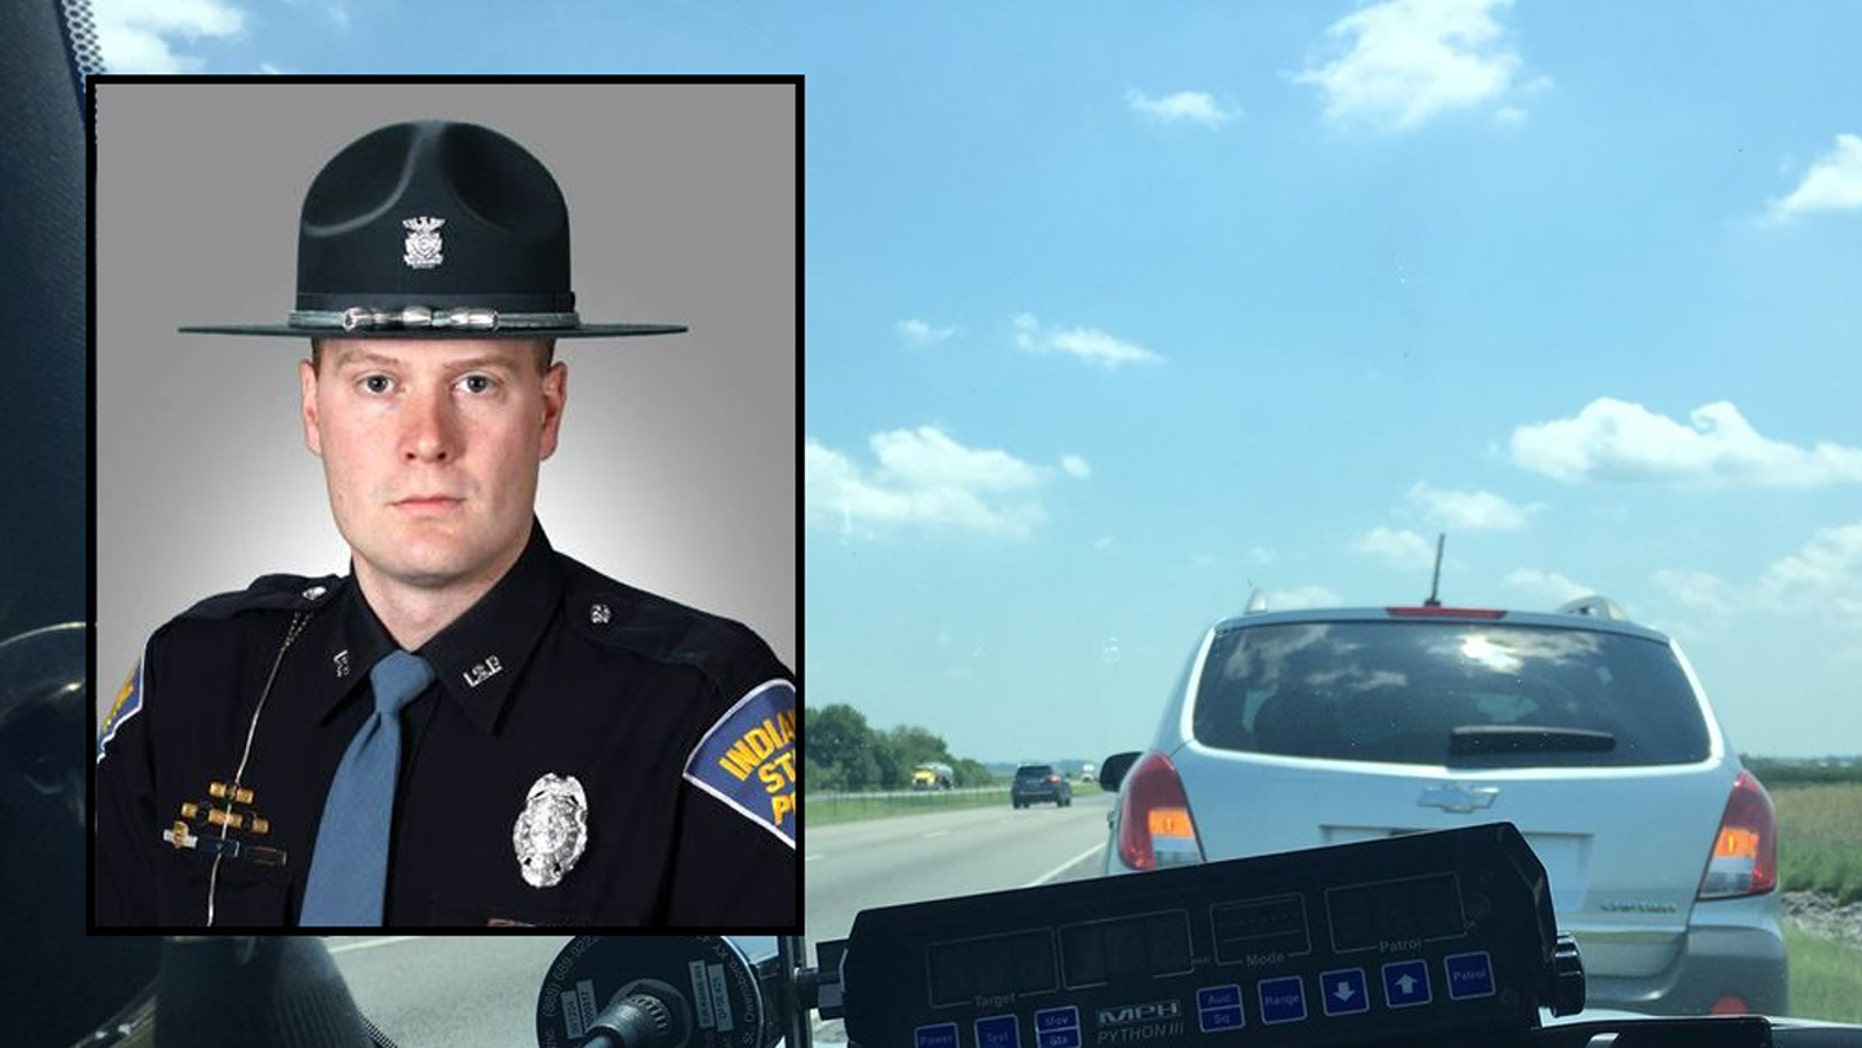 Indiana State Trooper, Sgt. Stephen Wheeles, went viral after he tweeted a photo of a car he pulled over for driving too slow in the left lane on the highway.